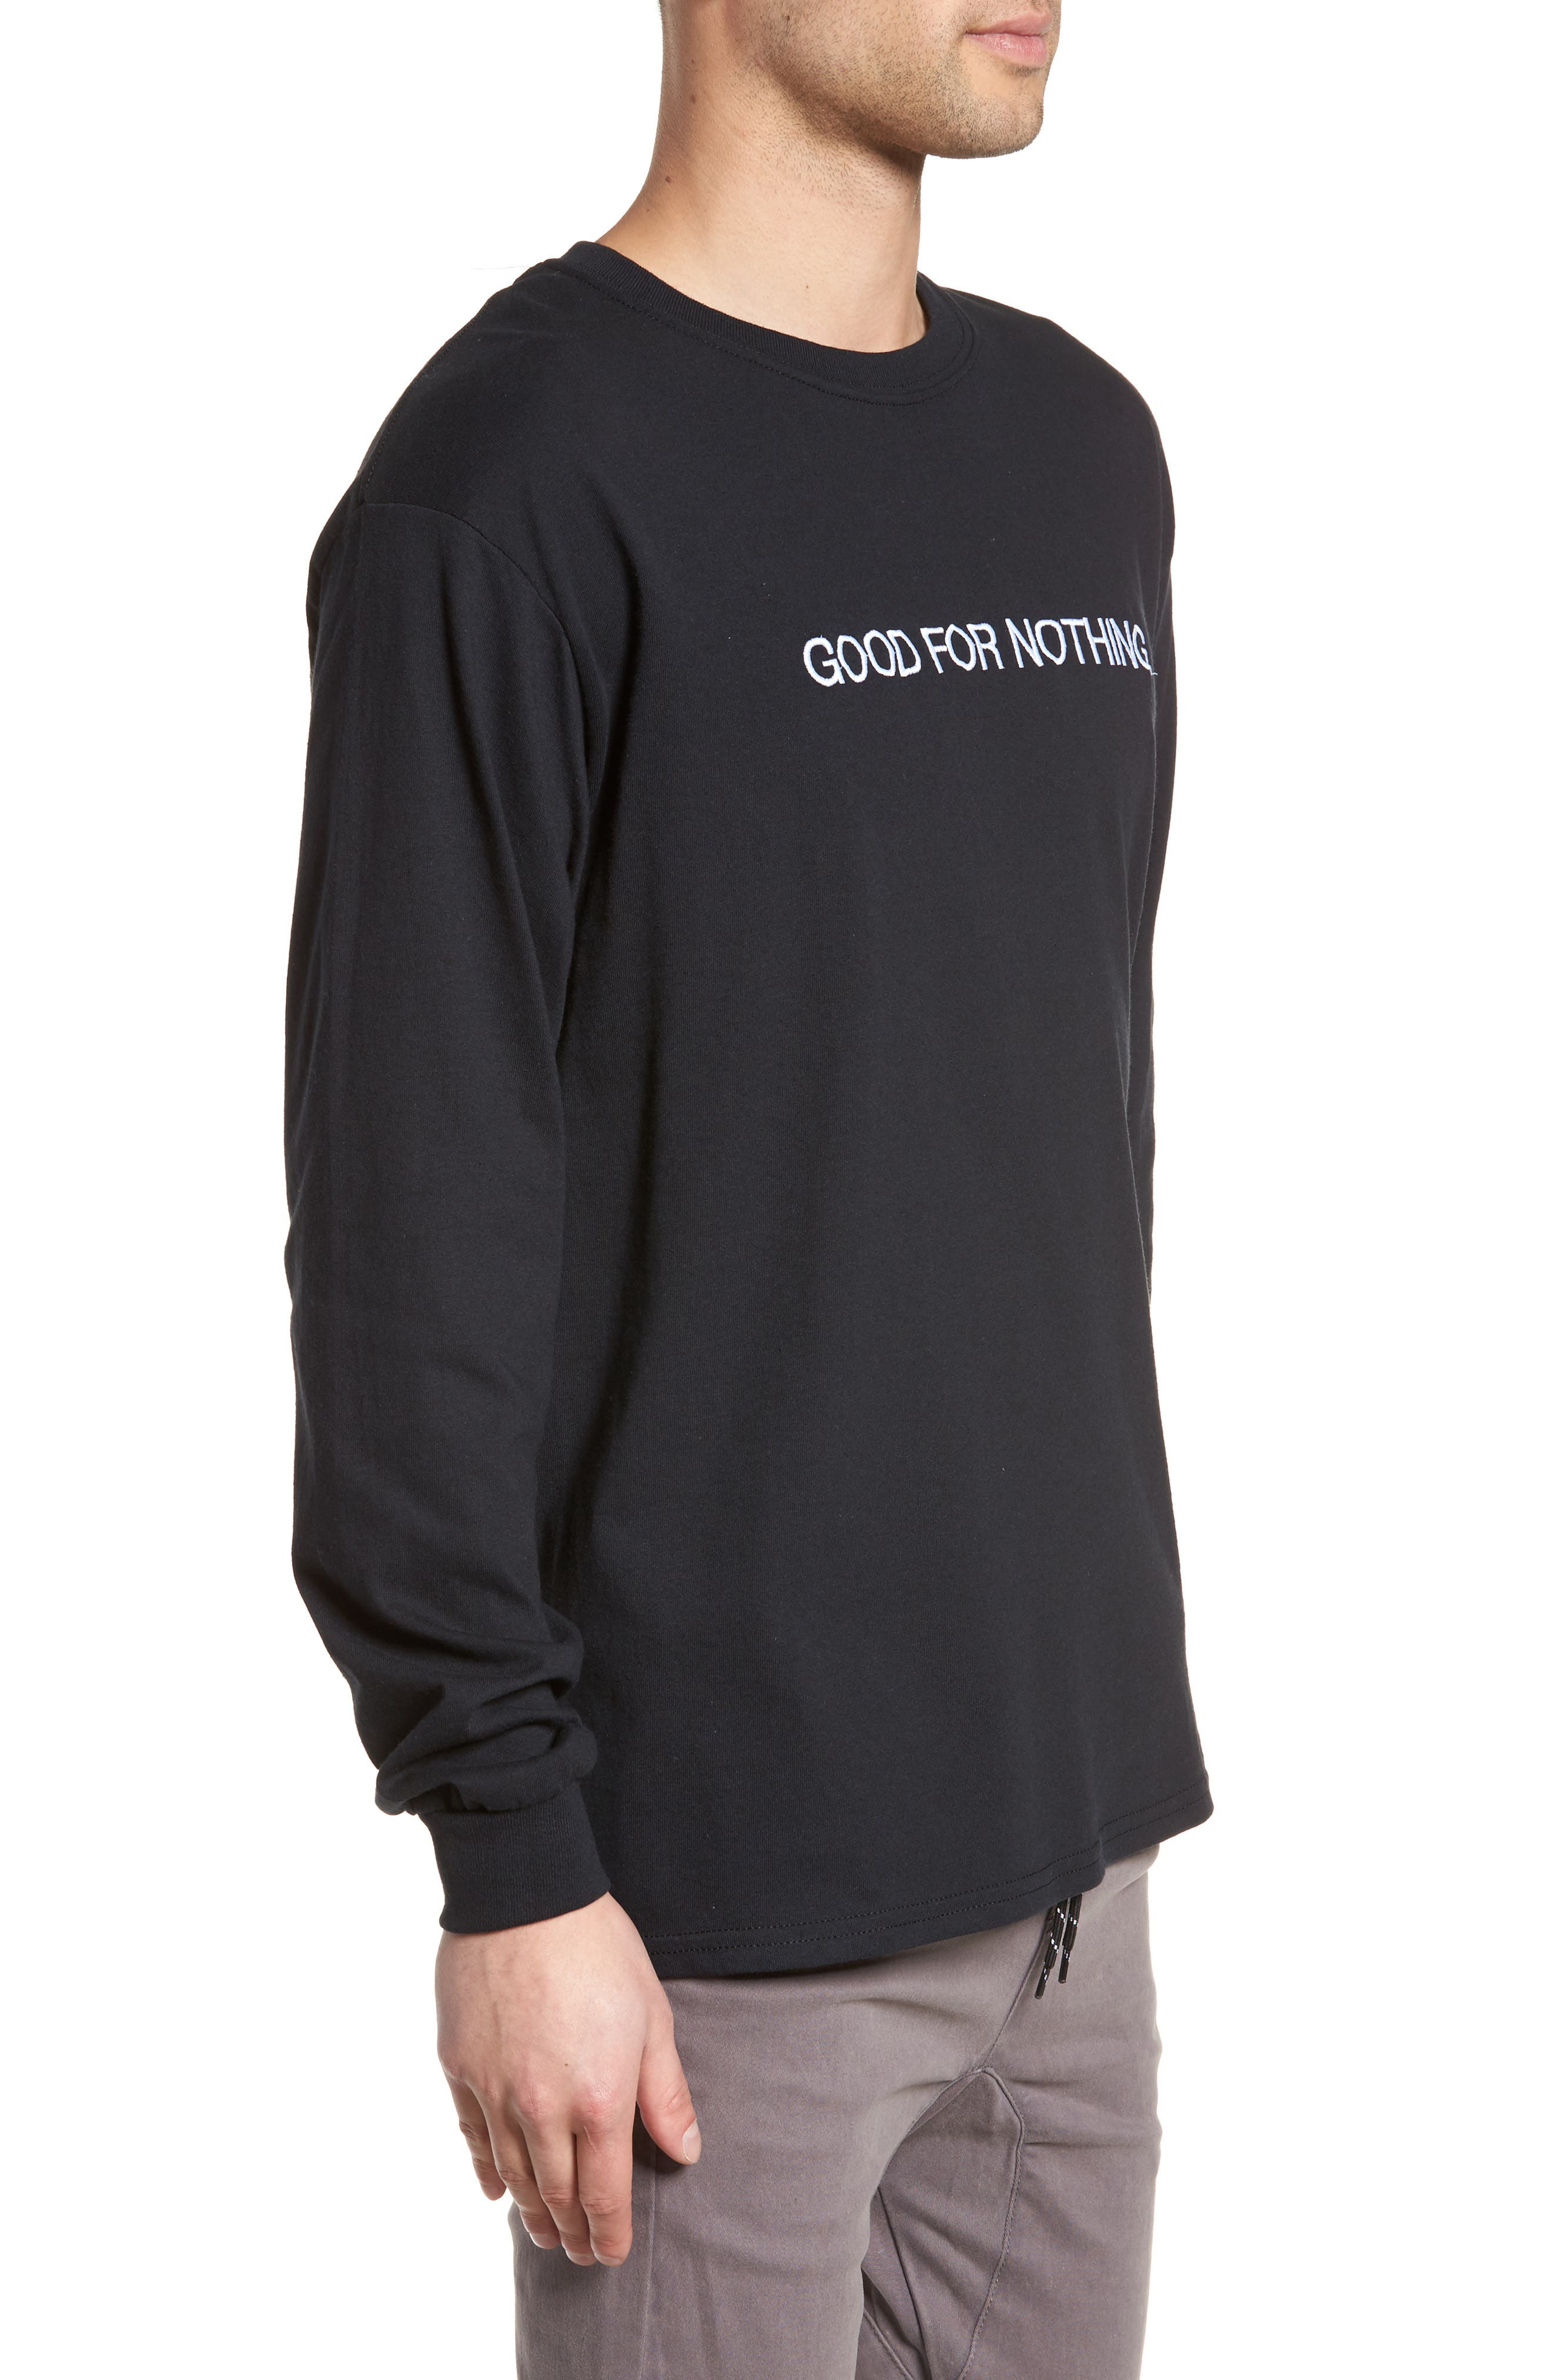 Good for Nothing Embroidered T-Shirt,                             Alternate thumbnail 3, color,                             Black Good For